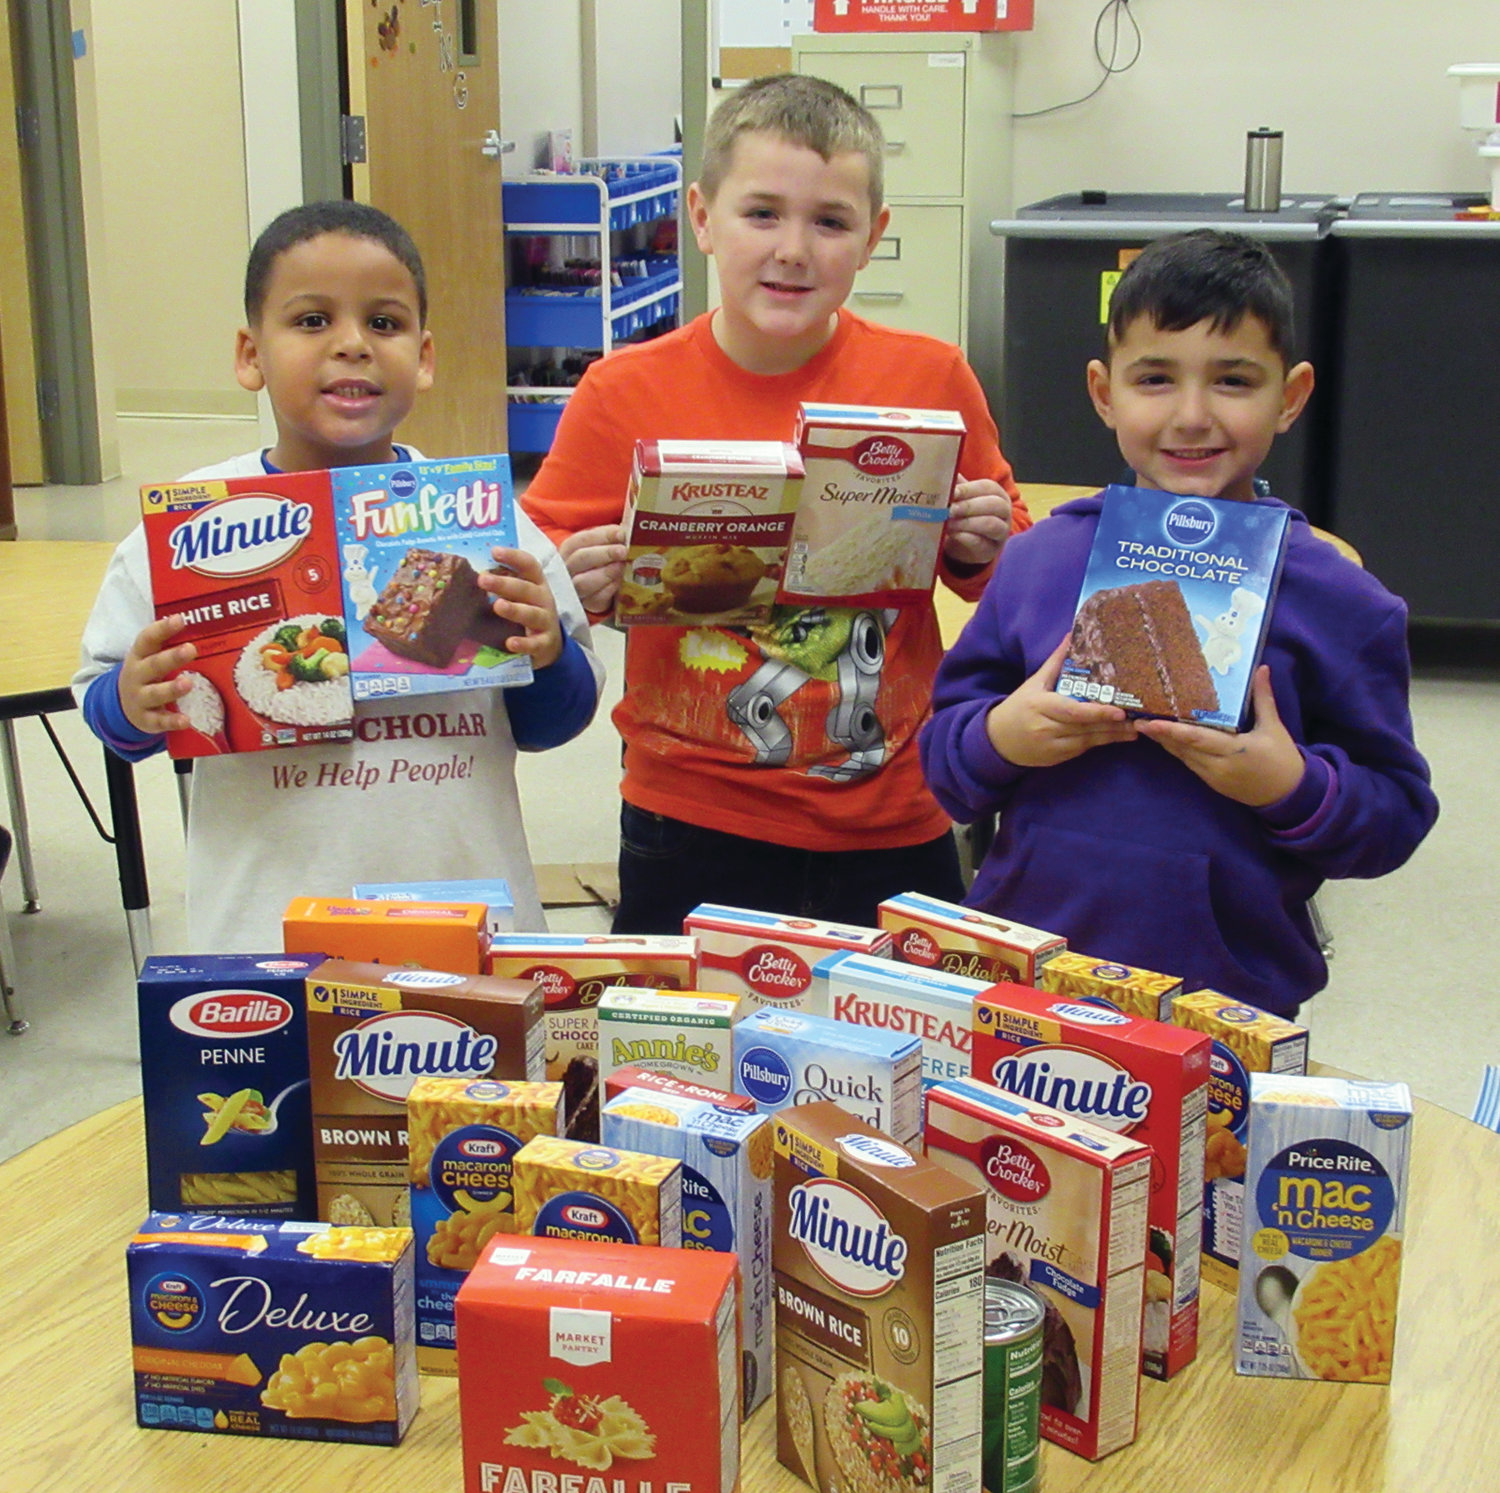 CLASSIC COLLECTORS: ECC students Javier Santana, Marshall Lavoie and Evan Pistocco show off some of the nonperishable foods items the Johnston school collected to help fill the Food Pantry at Thornton Elementary School.